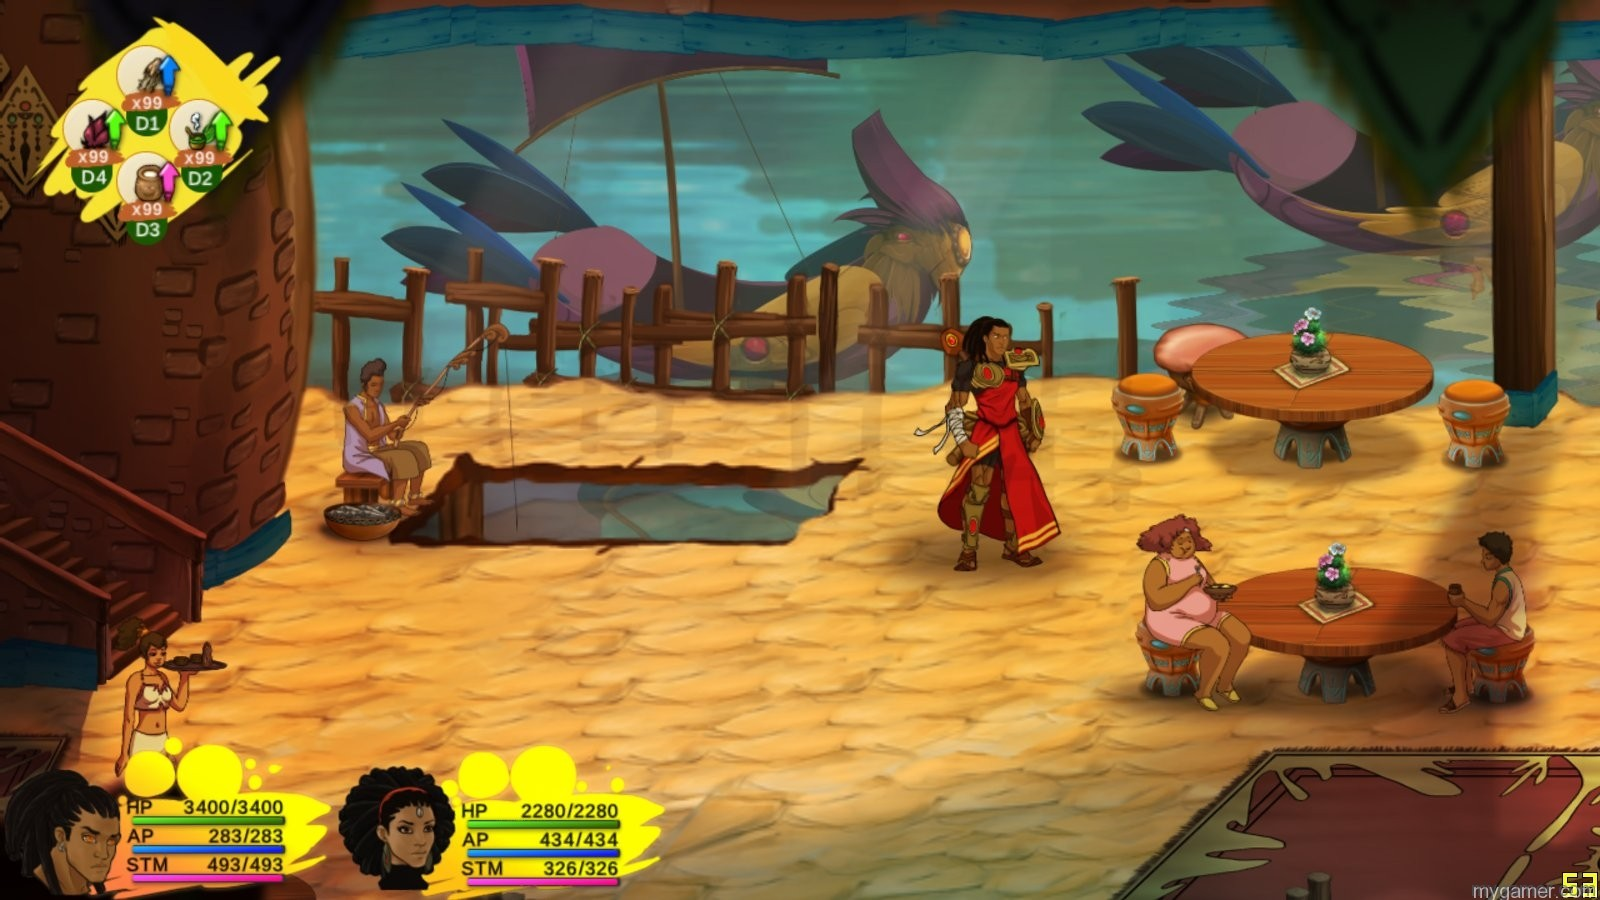 aurion-legacy-of-the-koriodan_015 Aurion: Legacy of the Kori-Odan PC Review Aurion: Legacy of the Kori-Odan PC Review aurion legacy of the koriodan 015